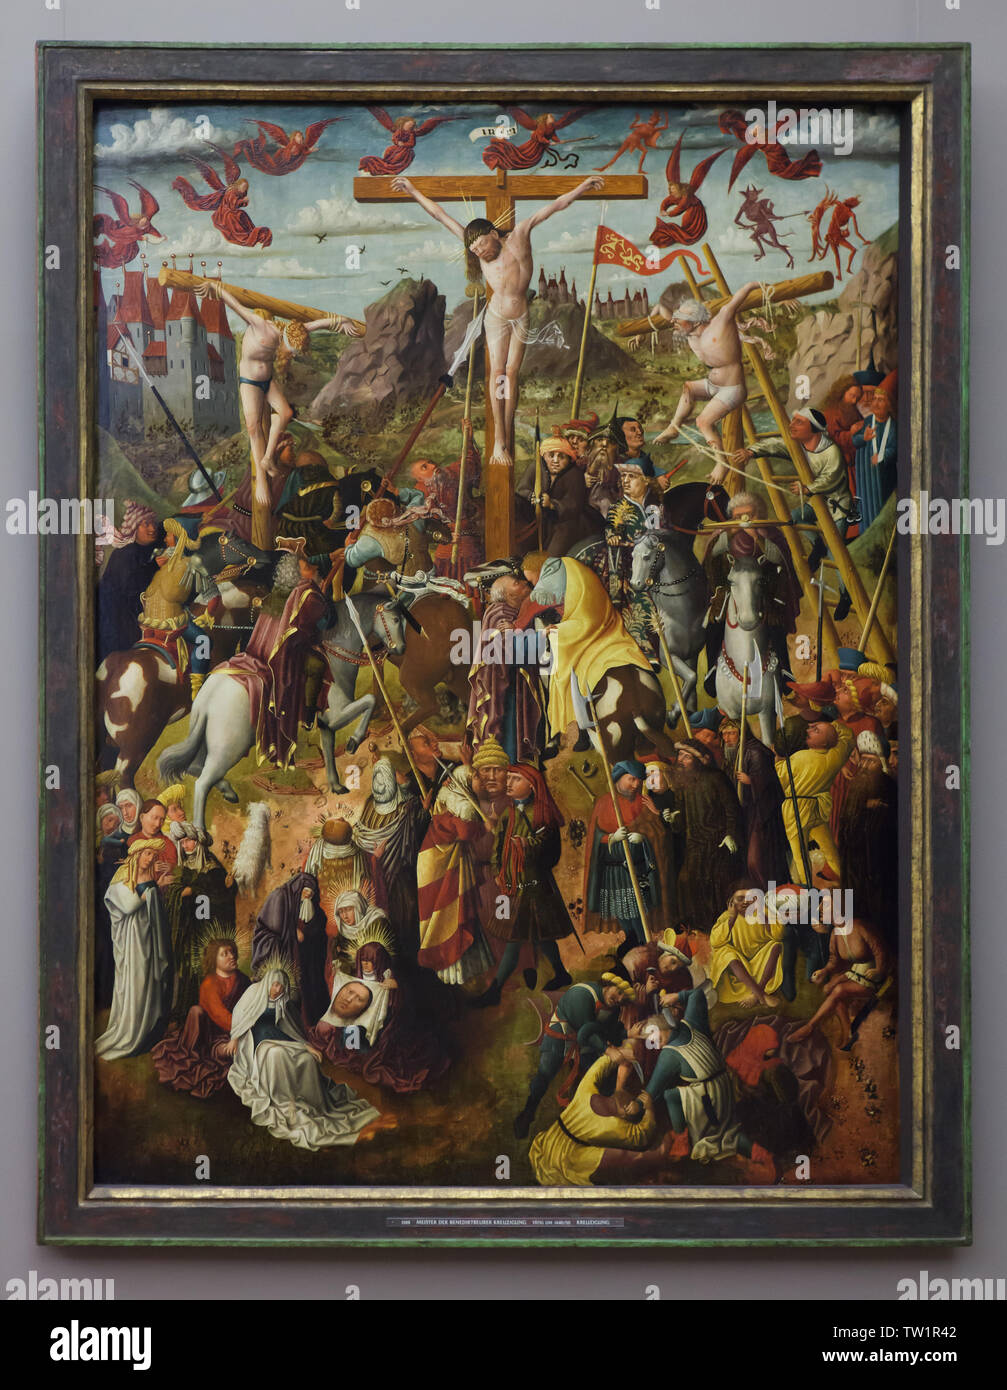 Crucifixion by Master of the Benediktbeuren Crucifixion dated from around 1455 on display in the Alte Pinakothek in Munich, Bavaria, Germany. Stock Photo